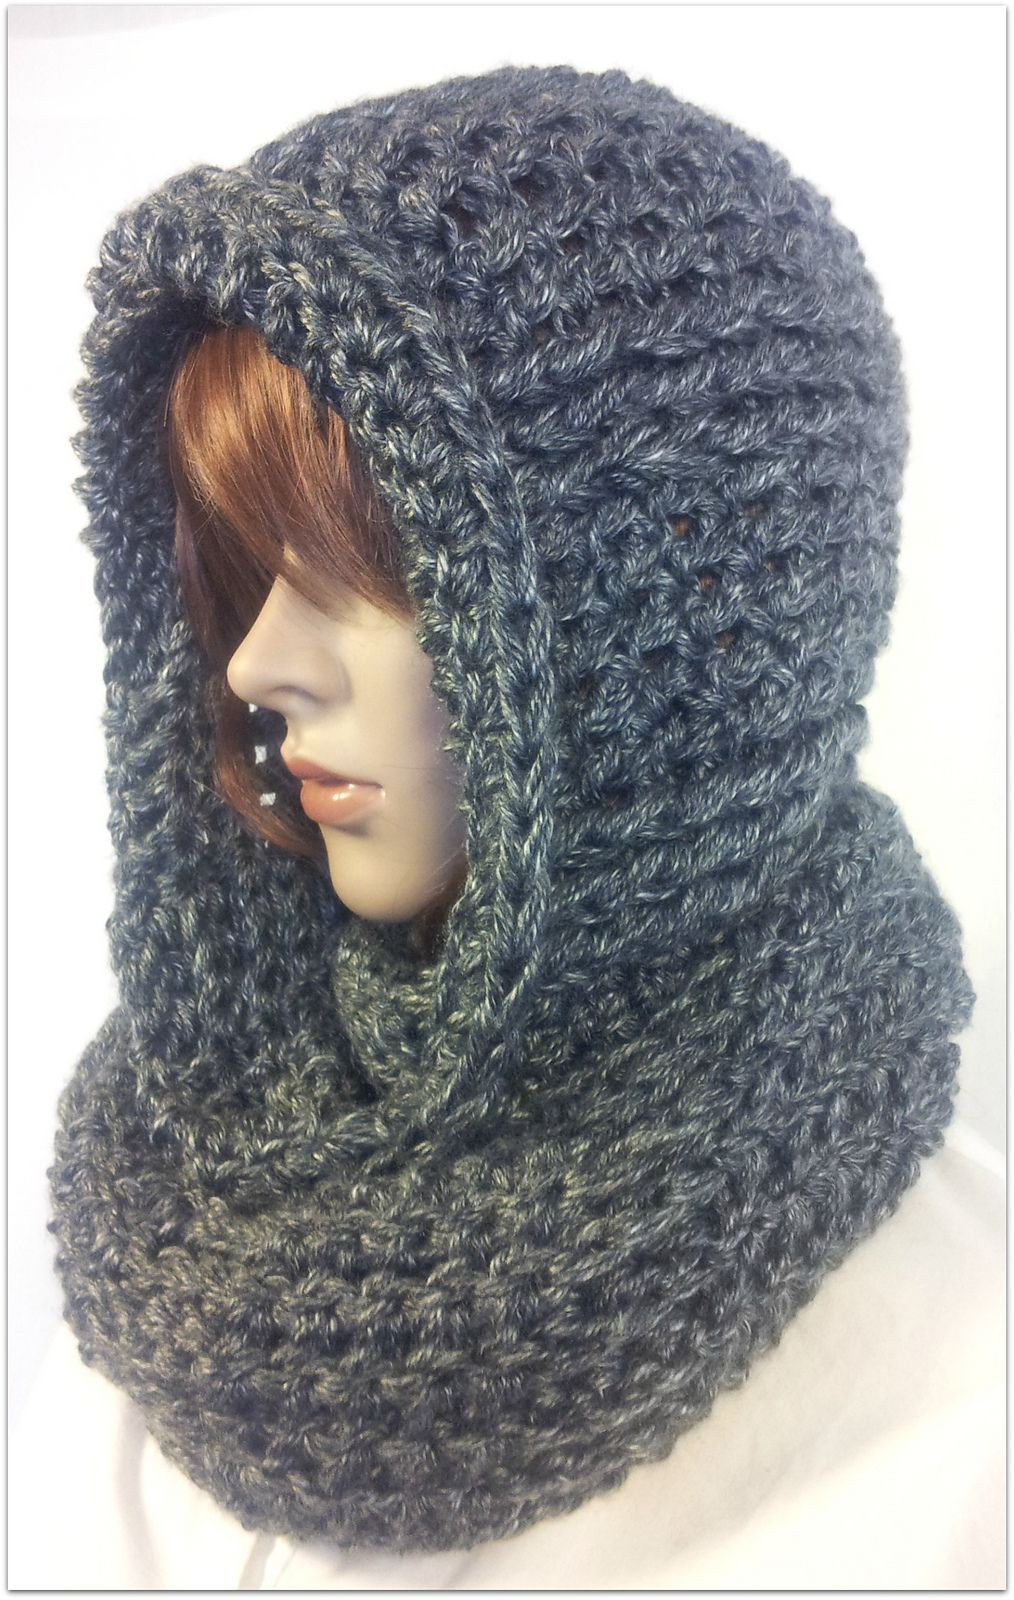 Unique Serenity Hooded Scarf Pattern by Tina Lynn Creations Crochet Hooded Scarf Of Wonderful 48 Images Crochet Hooded Scarf